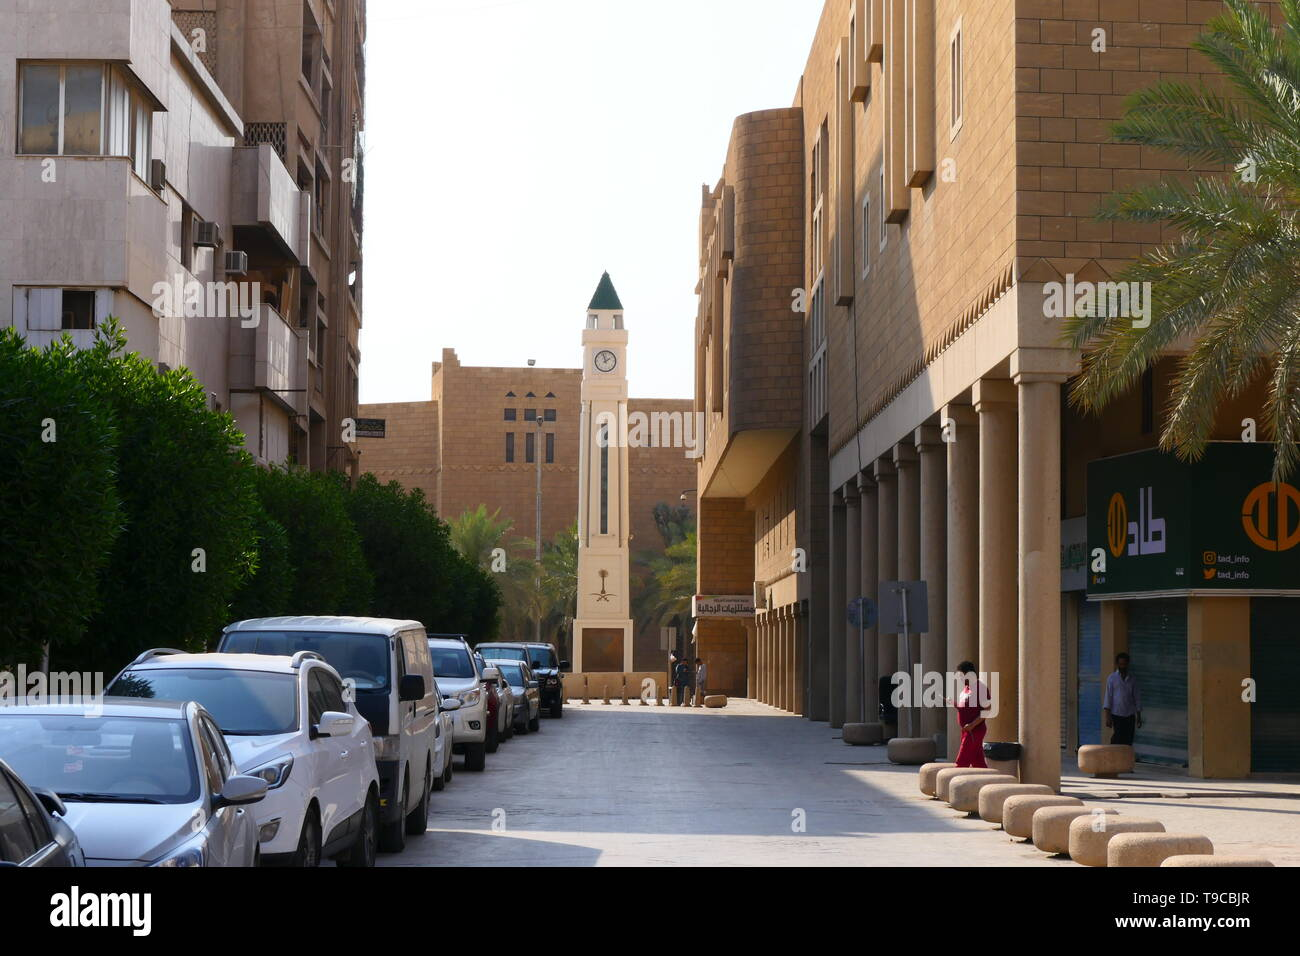 RIYADH, SAUDI ARABIA - DECEMBER 16, 2018: The clock tower of Ad Dirah, in the old town of Riyadh - Stock Image